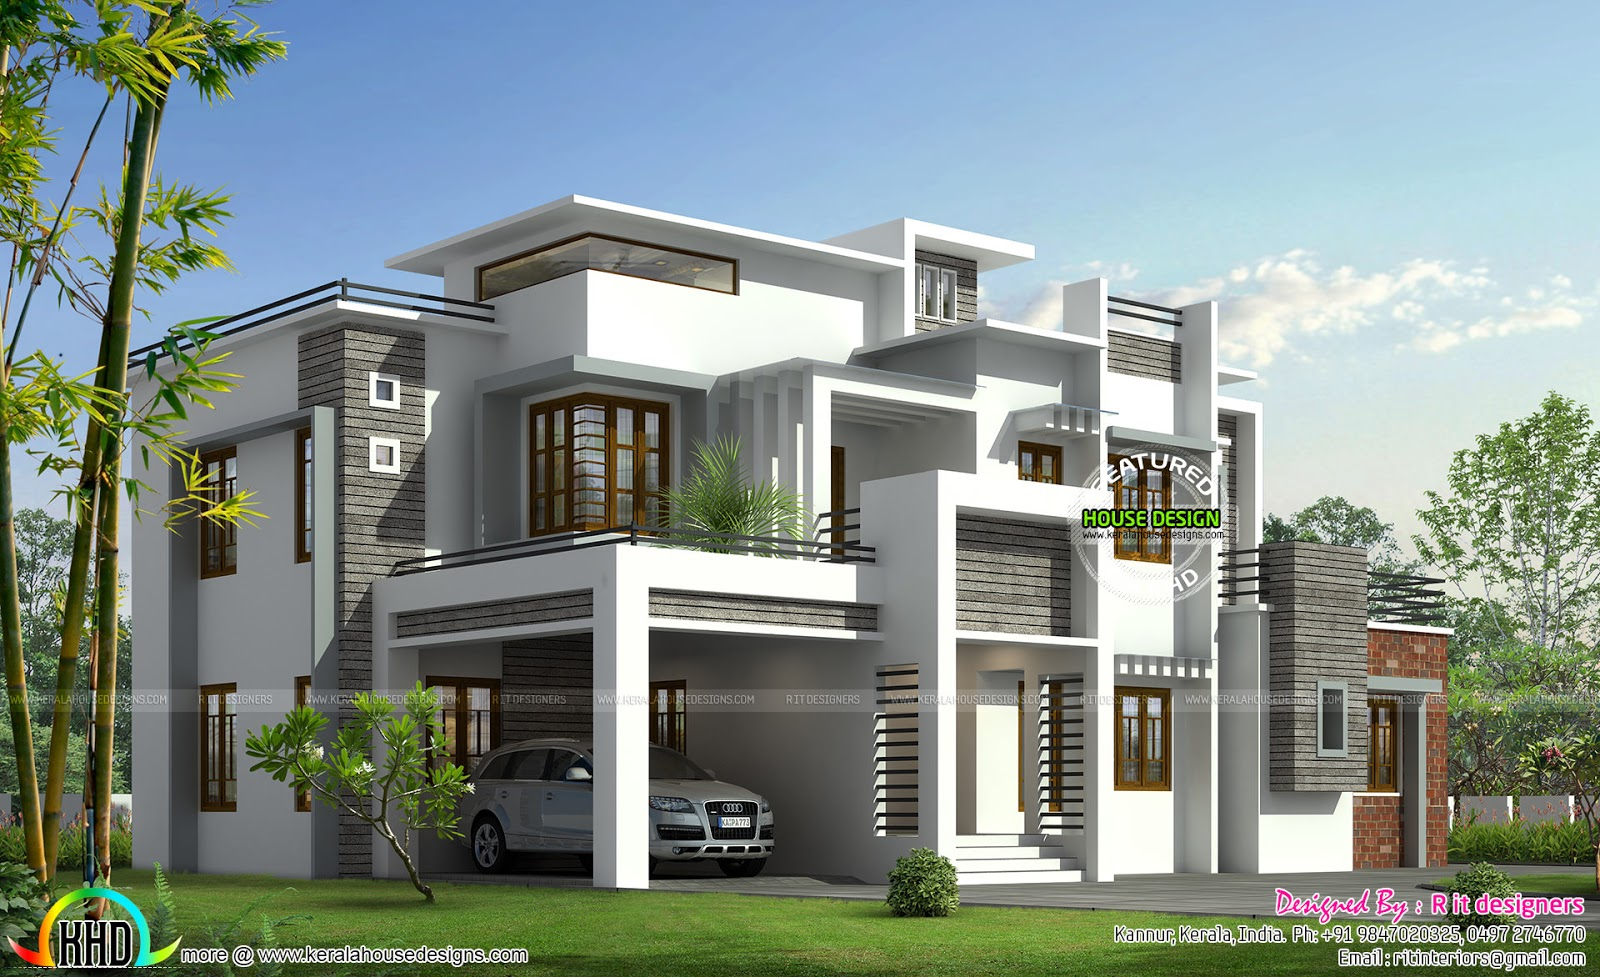 Box model contemporary house kerala home design and New model contemporary house